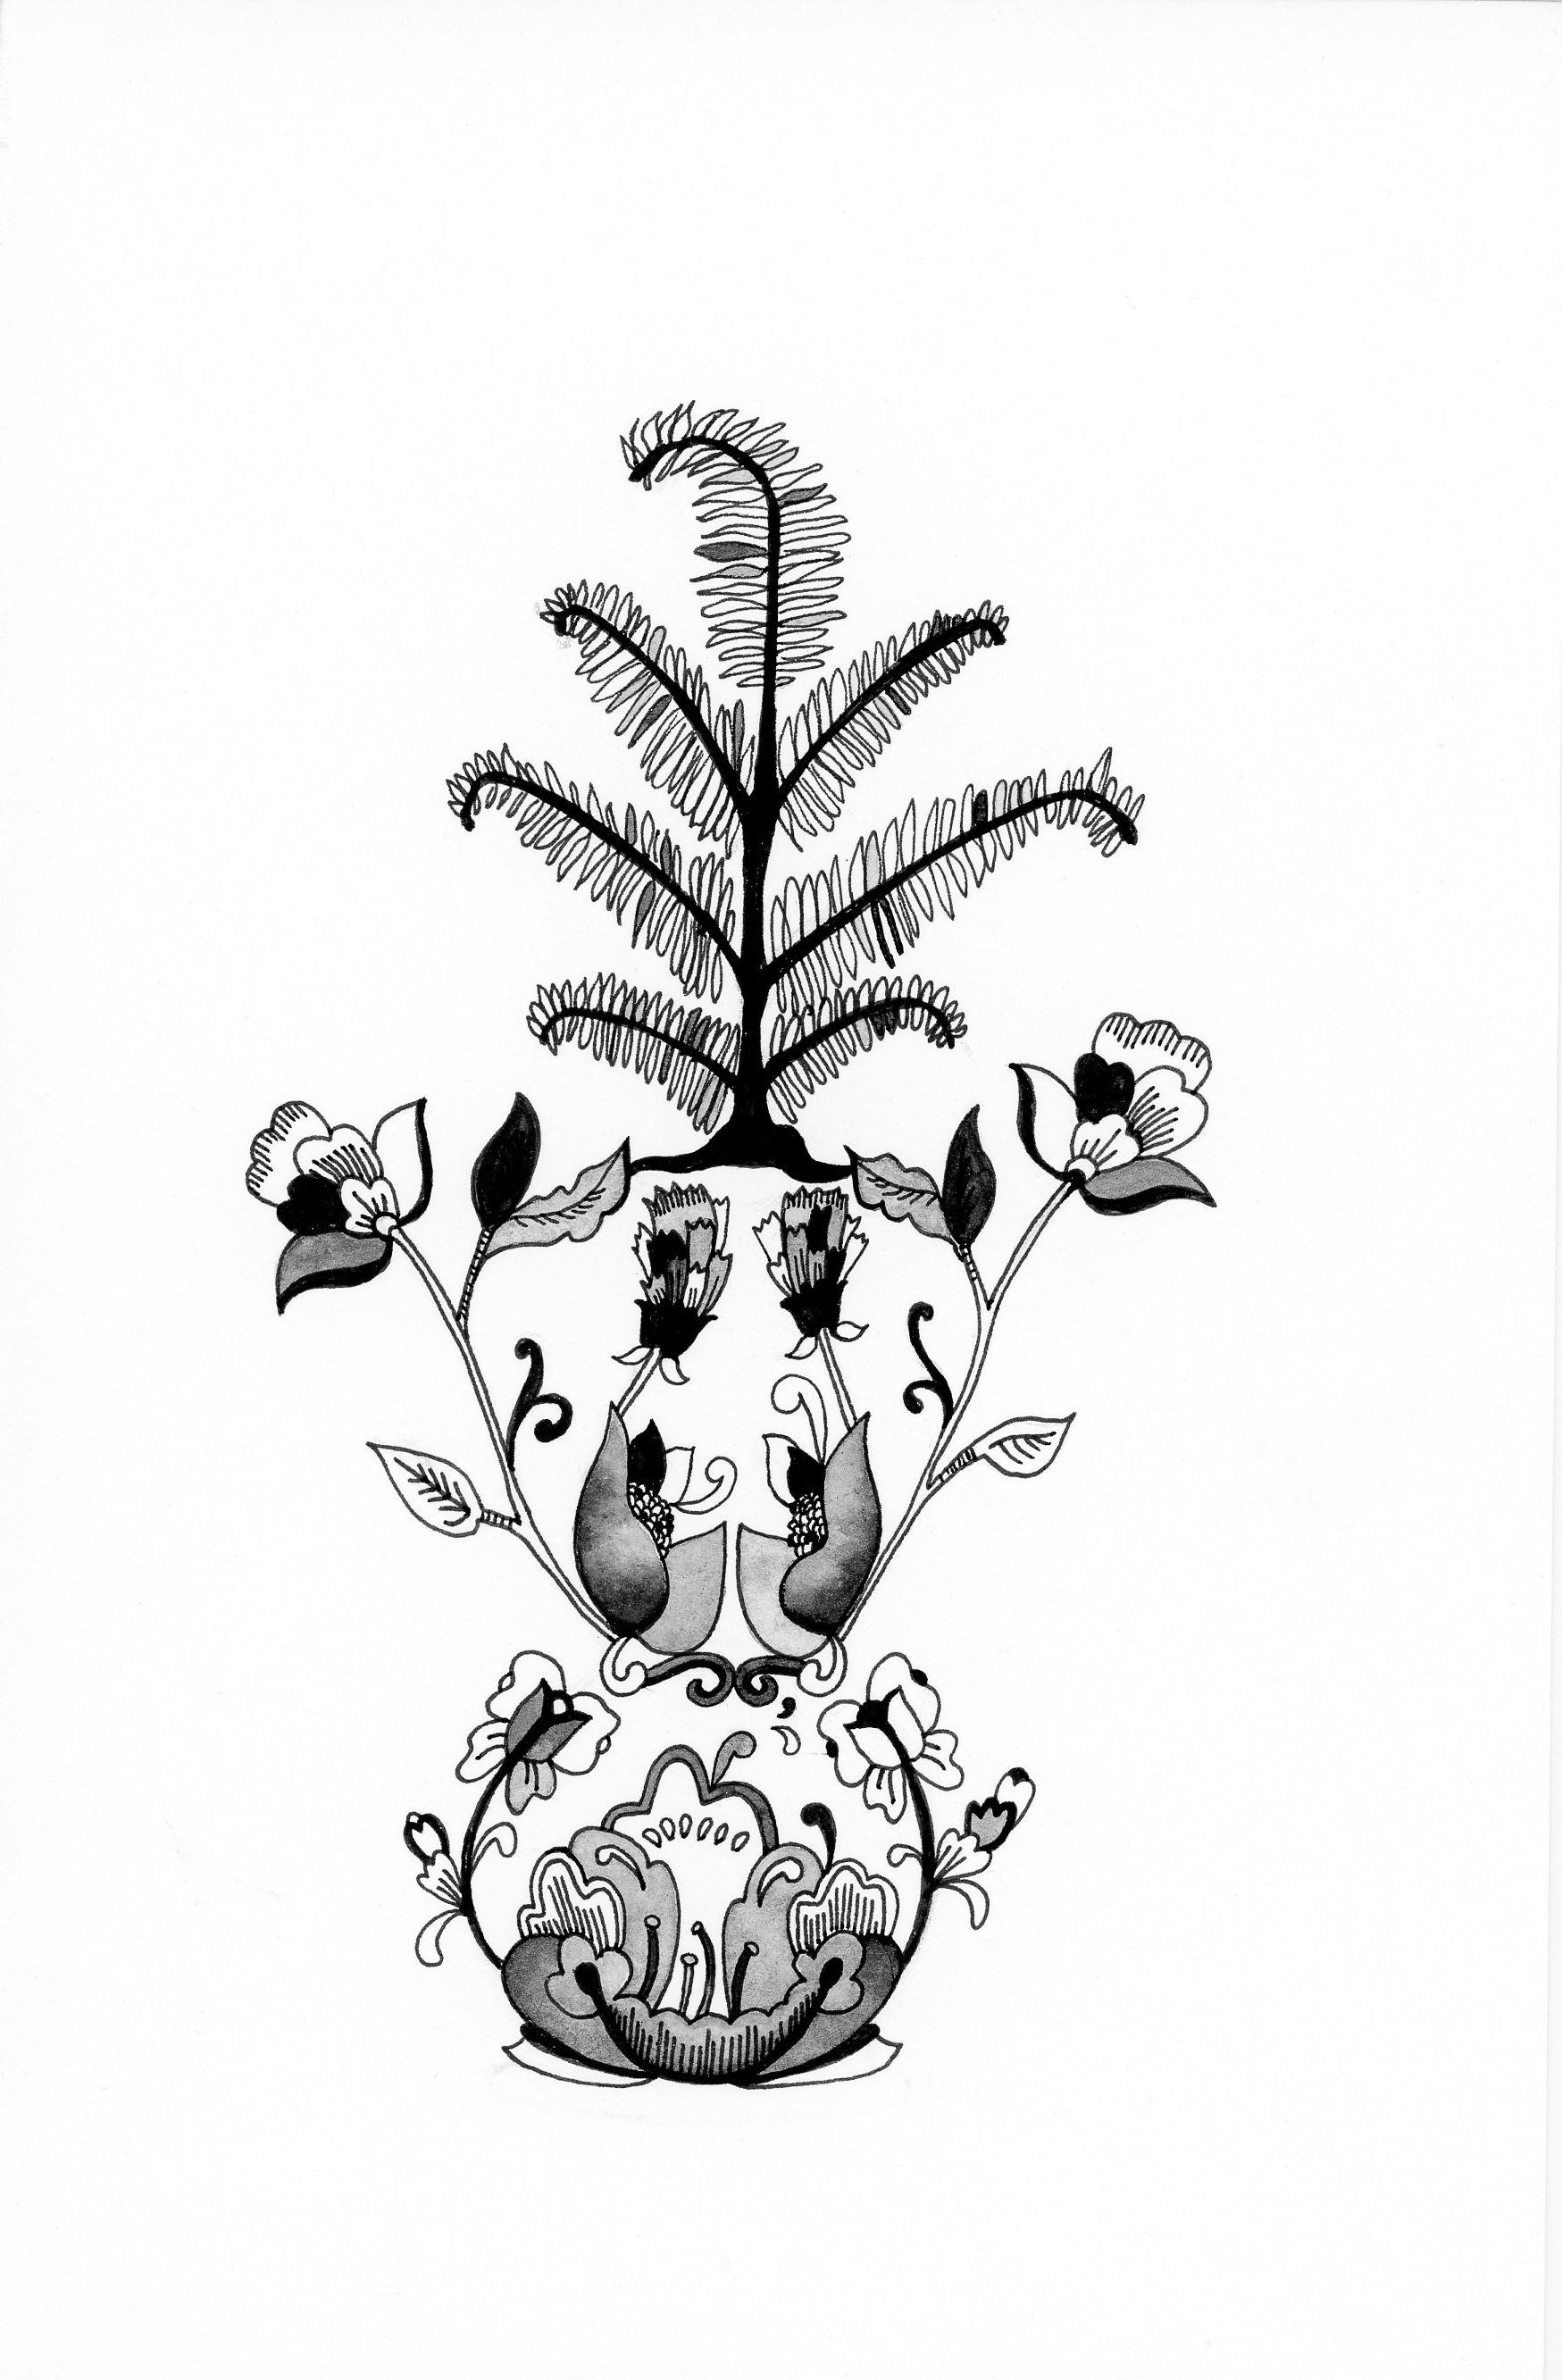 Fern Vase  6X9 inches, pen on paper